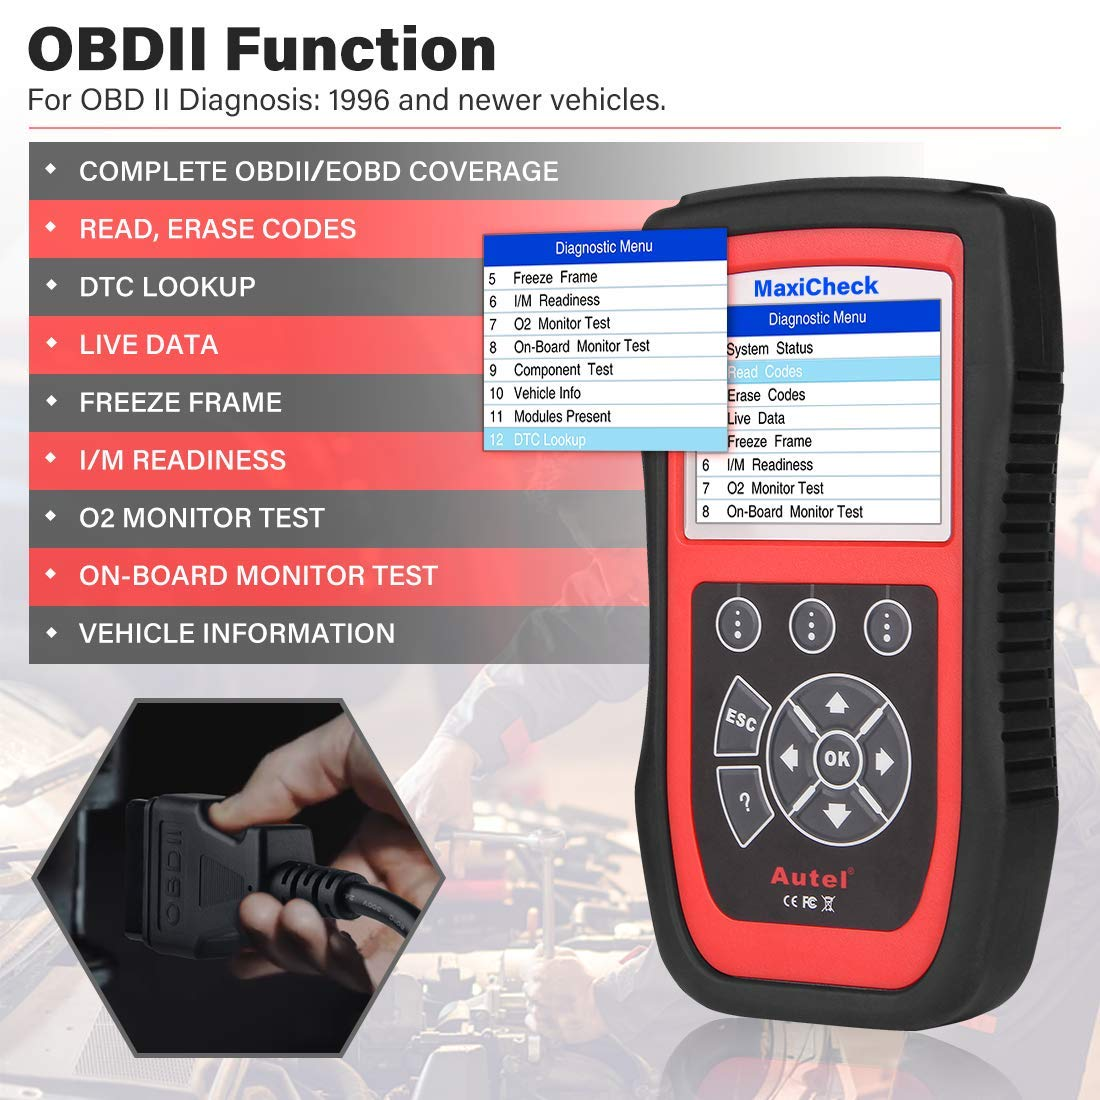 Autel MaxiCheck Pro OBD2 Scanner Automotive Diagnostic Scan Tool with ABS Auto Bleed, SRS Airbag, Oil Reset, SAS, EPB, BMS for Specific Vehicles 1996 to 2012 by Autel (Image #5)